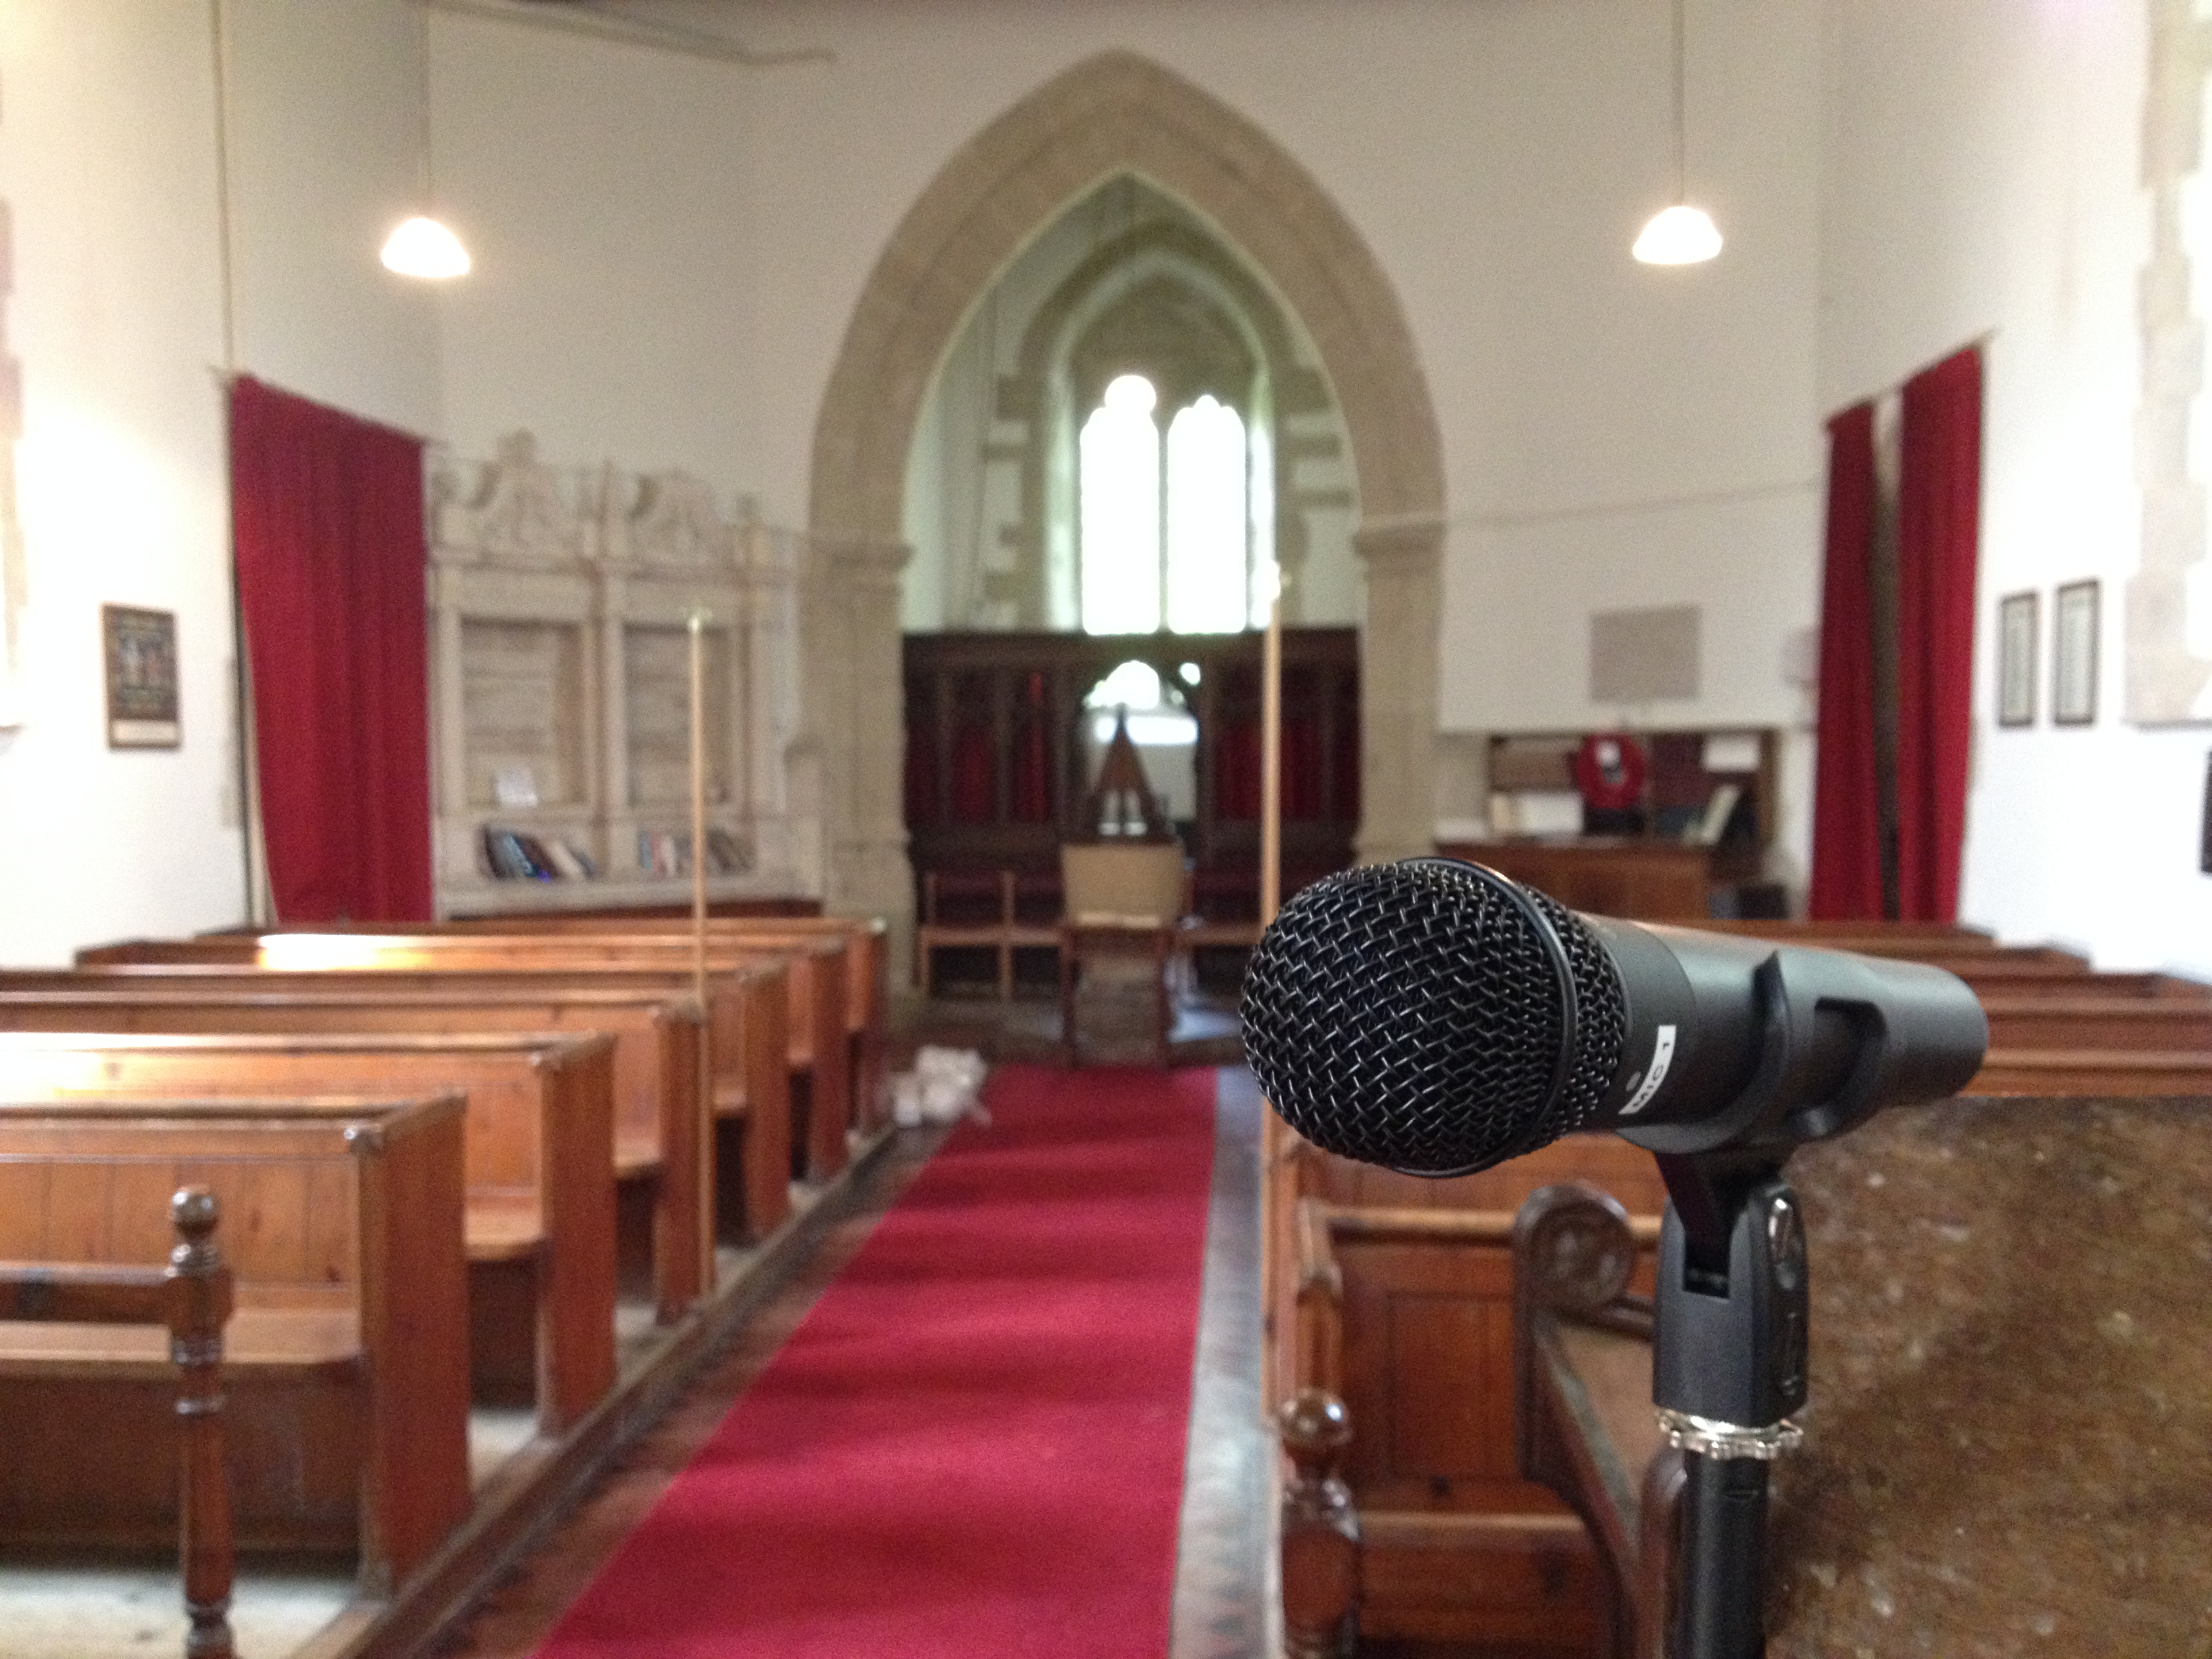 sound system for church. sound system installations churches for church